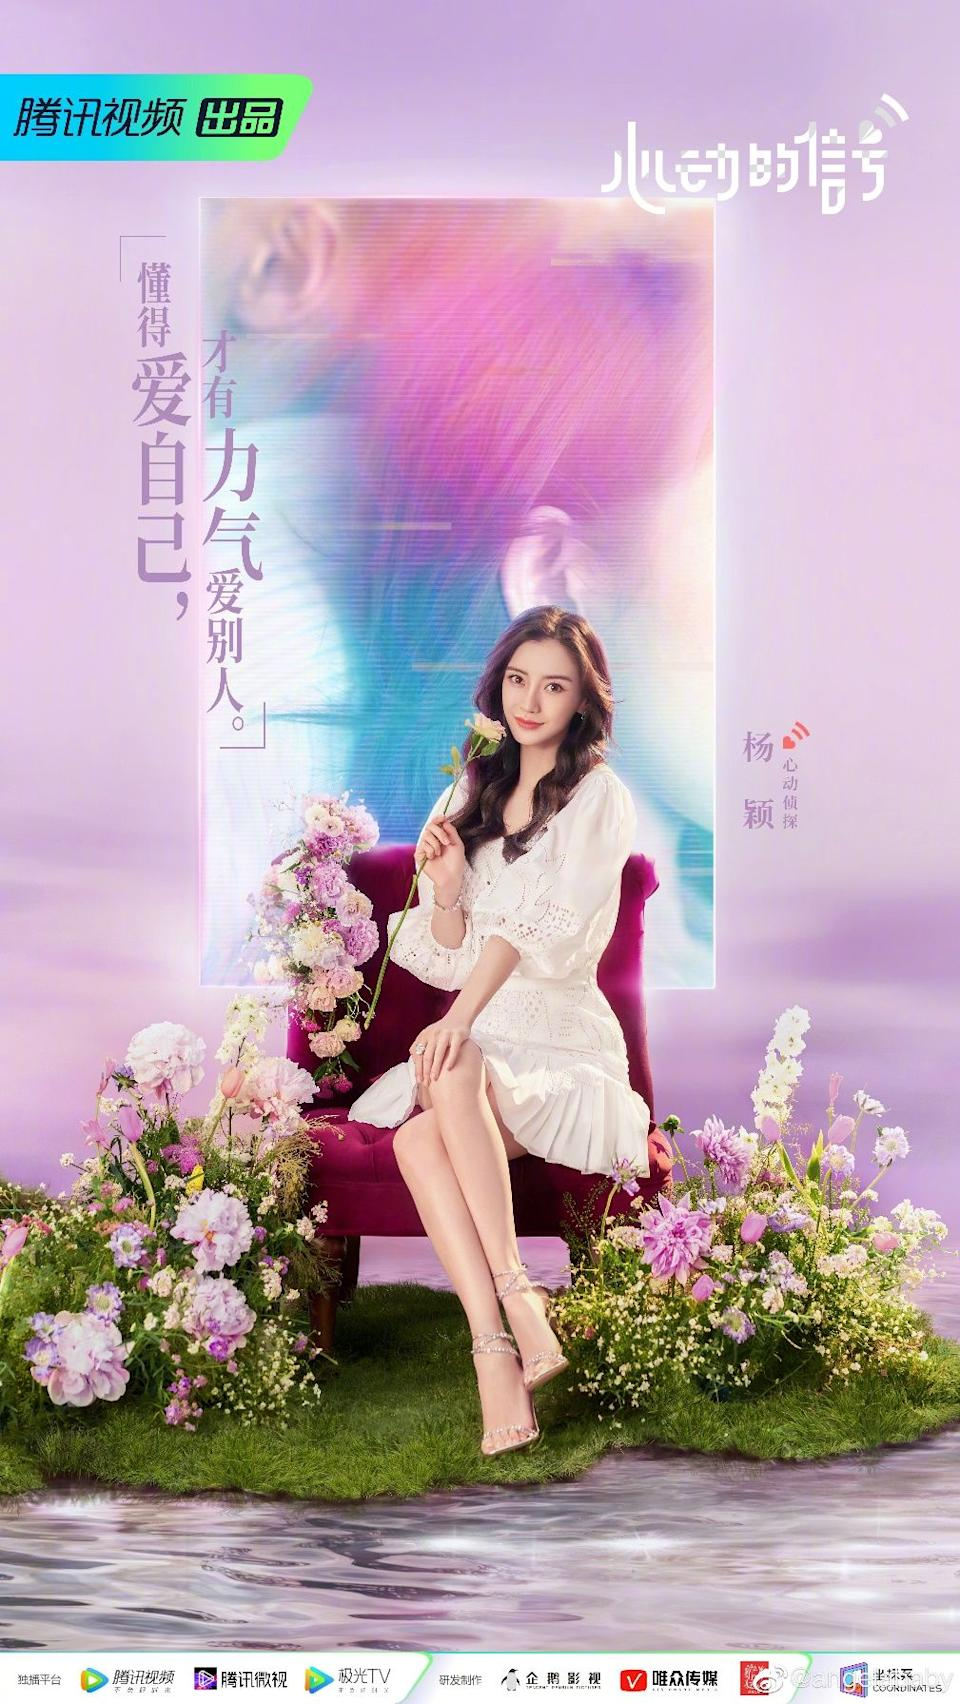 Angelababy's official announcement poster for Signal of Heart 4.